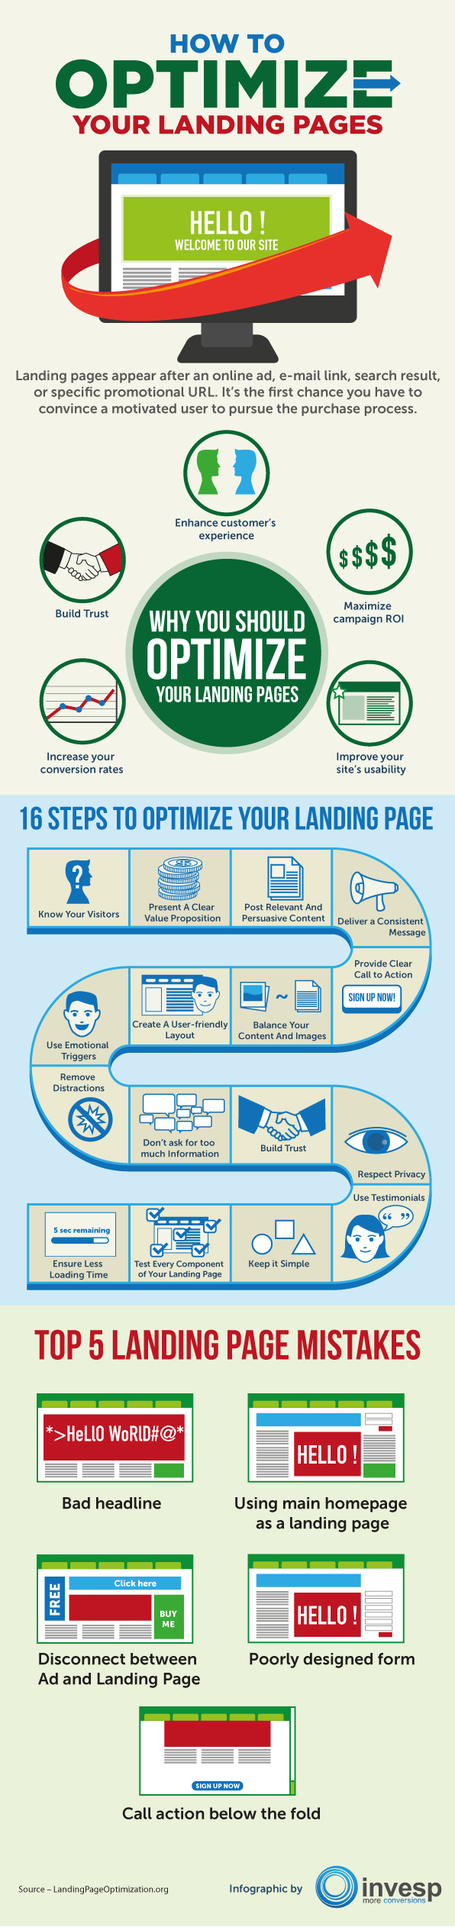 How to Optimize Your Landing Pages [Infographic] | Landing Page World | Scoop.it